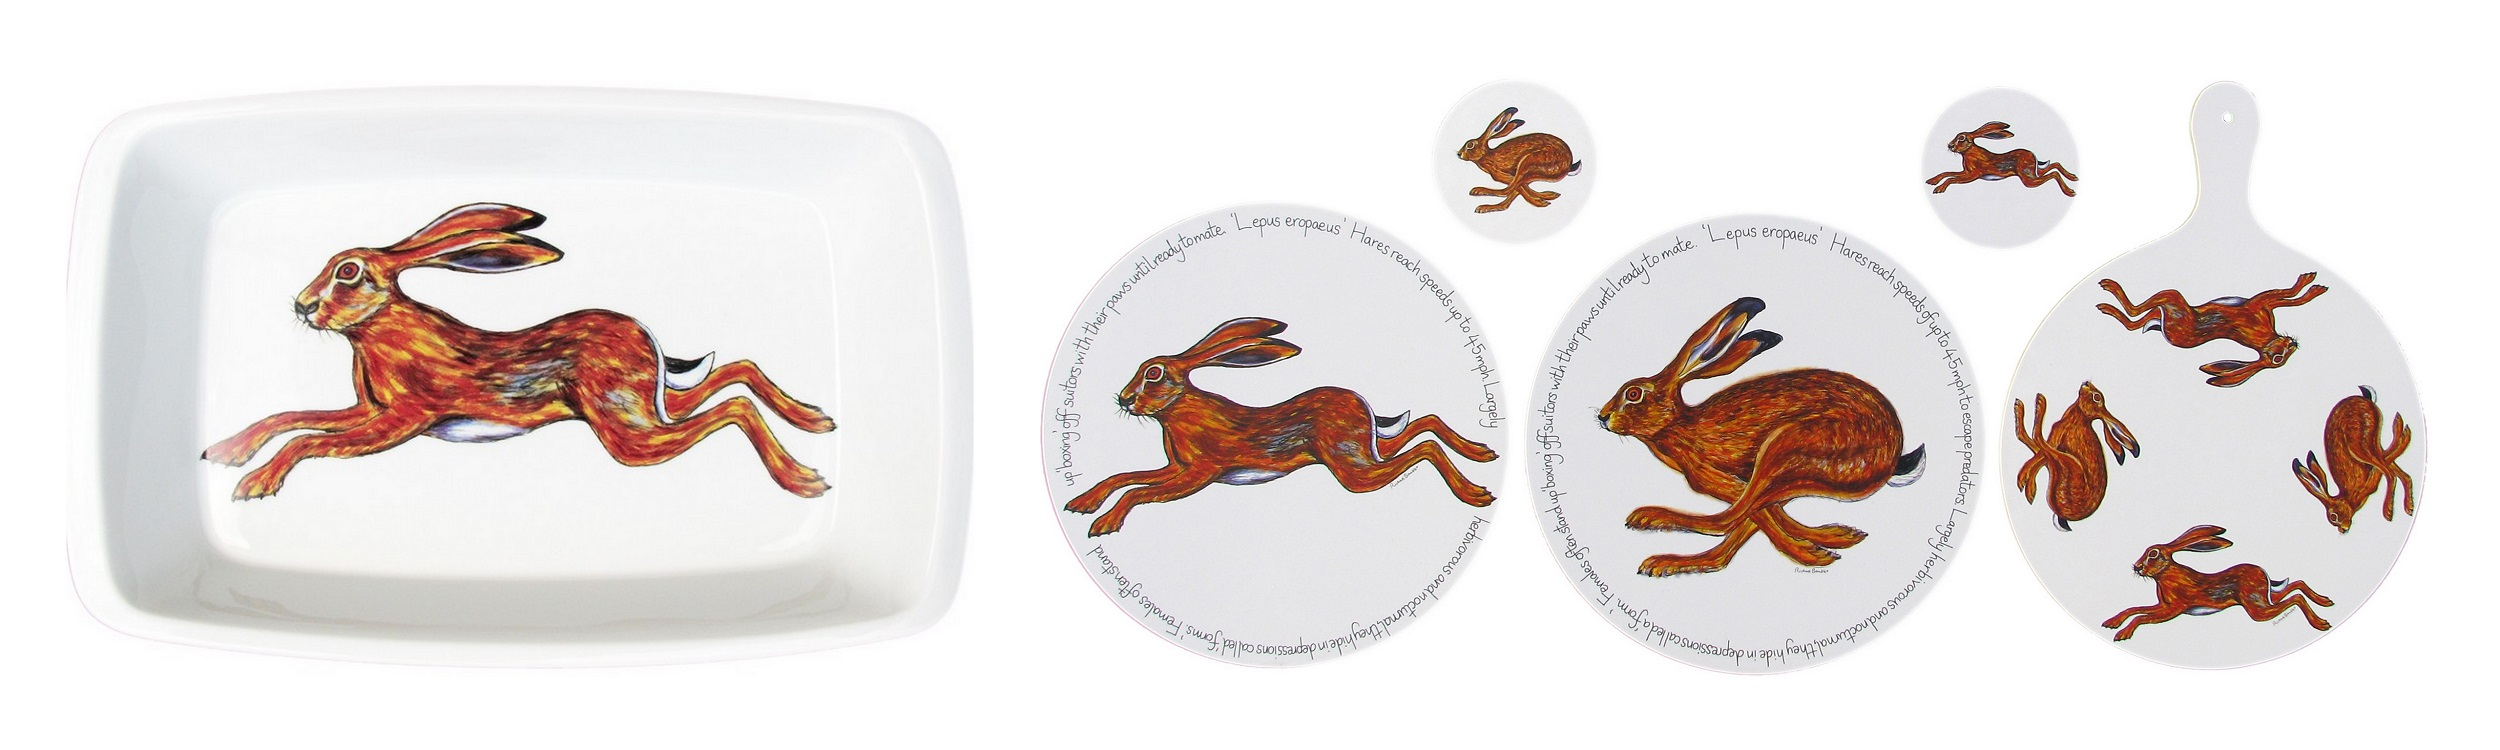 New Hares design Richard Bramble